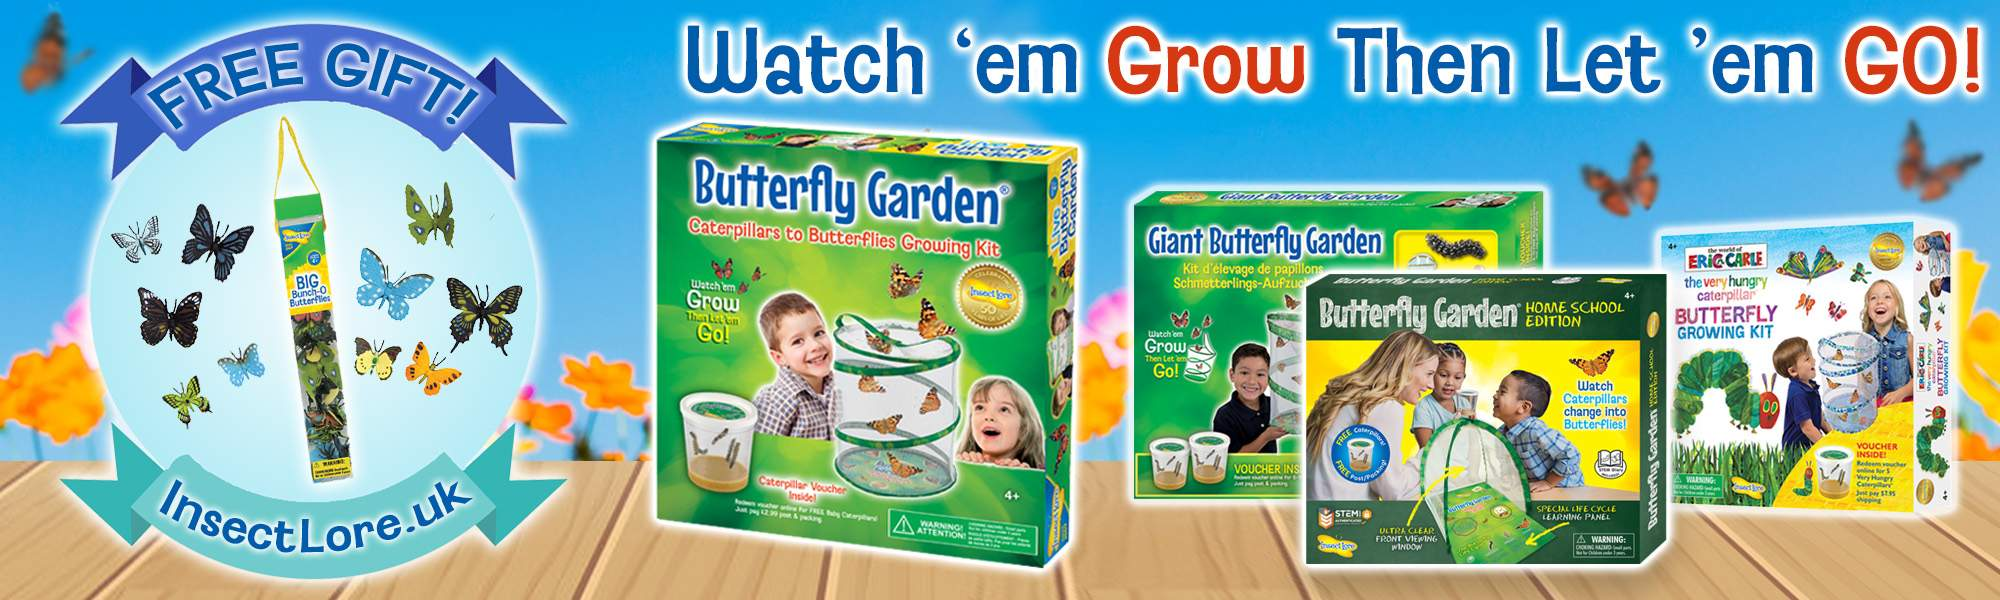 Family & Lifestyle LITTLEBIRD FAMILY PASS MEMBERS ONLY: Receive a FREE Bunch O' Butterflies worth £5.99 with any Insect Lore Butterfly Kit